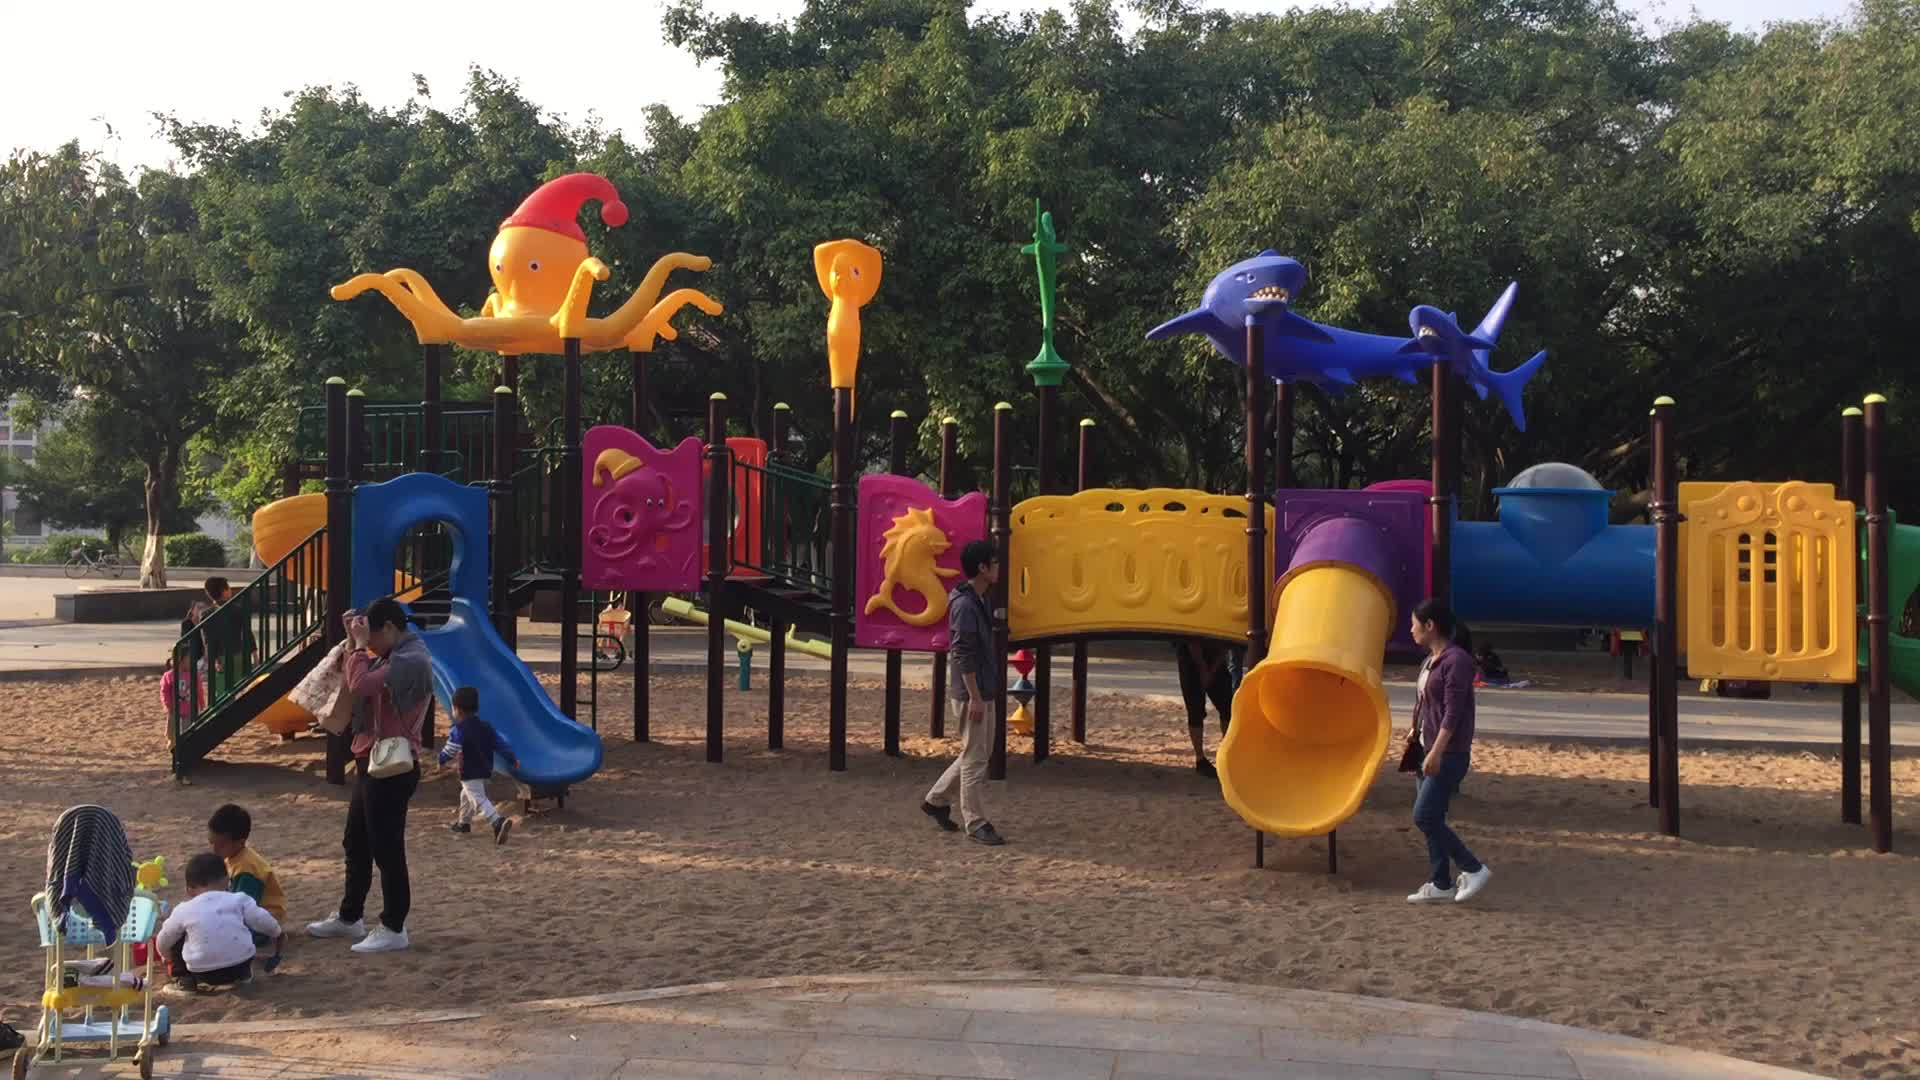 Chinese Factory Cheap Super Quality Plastic Kids Outdoor Play Playground Equipment